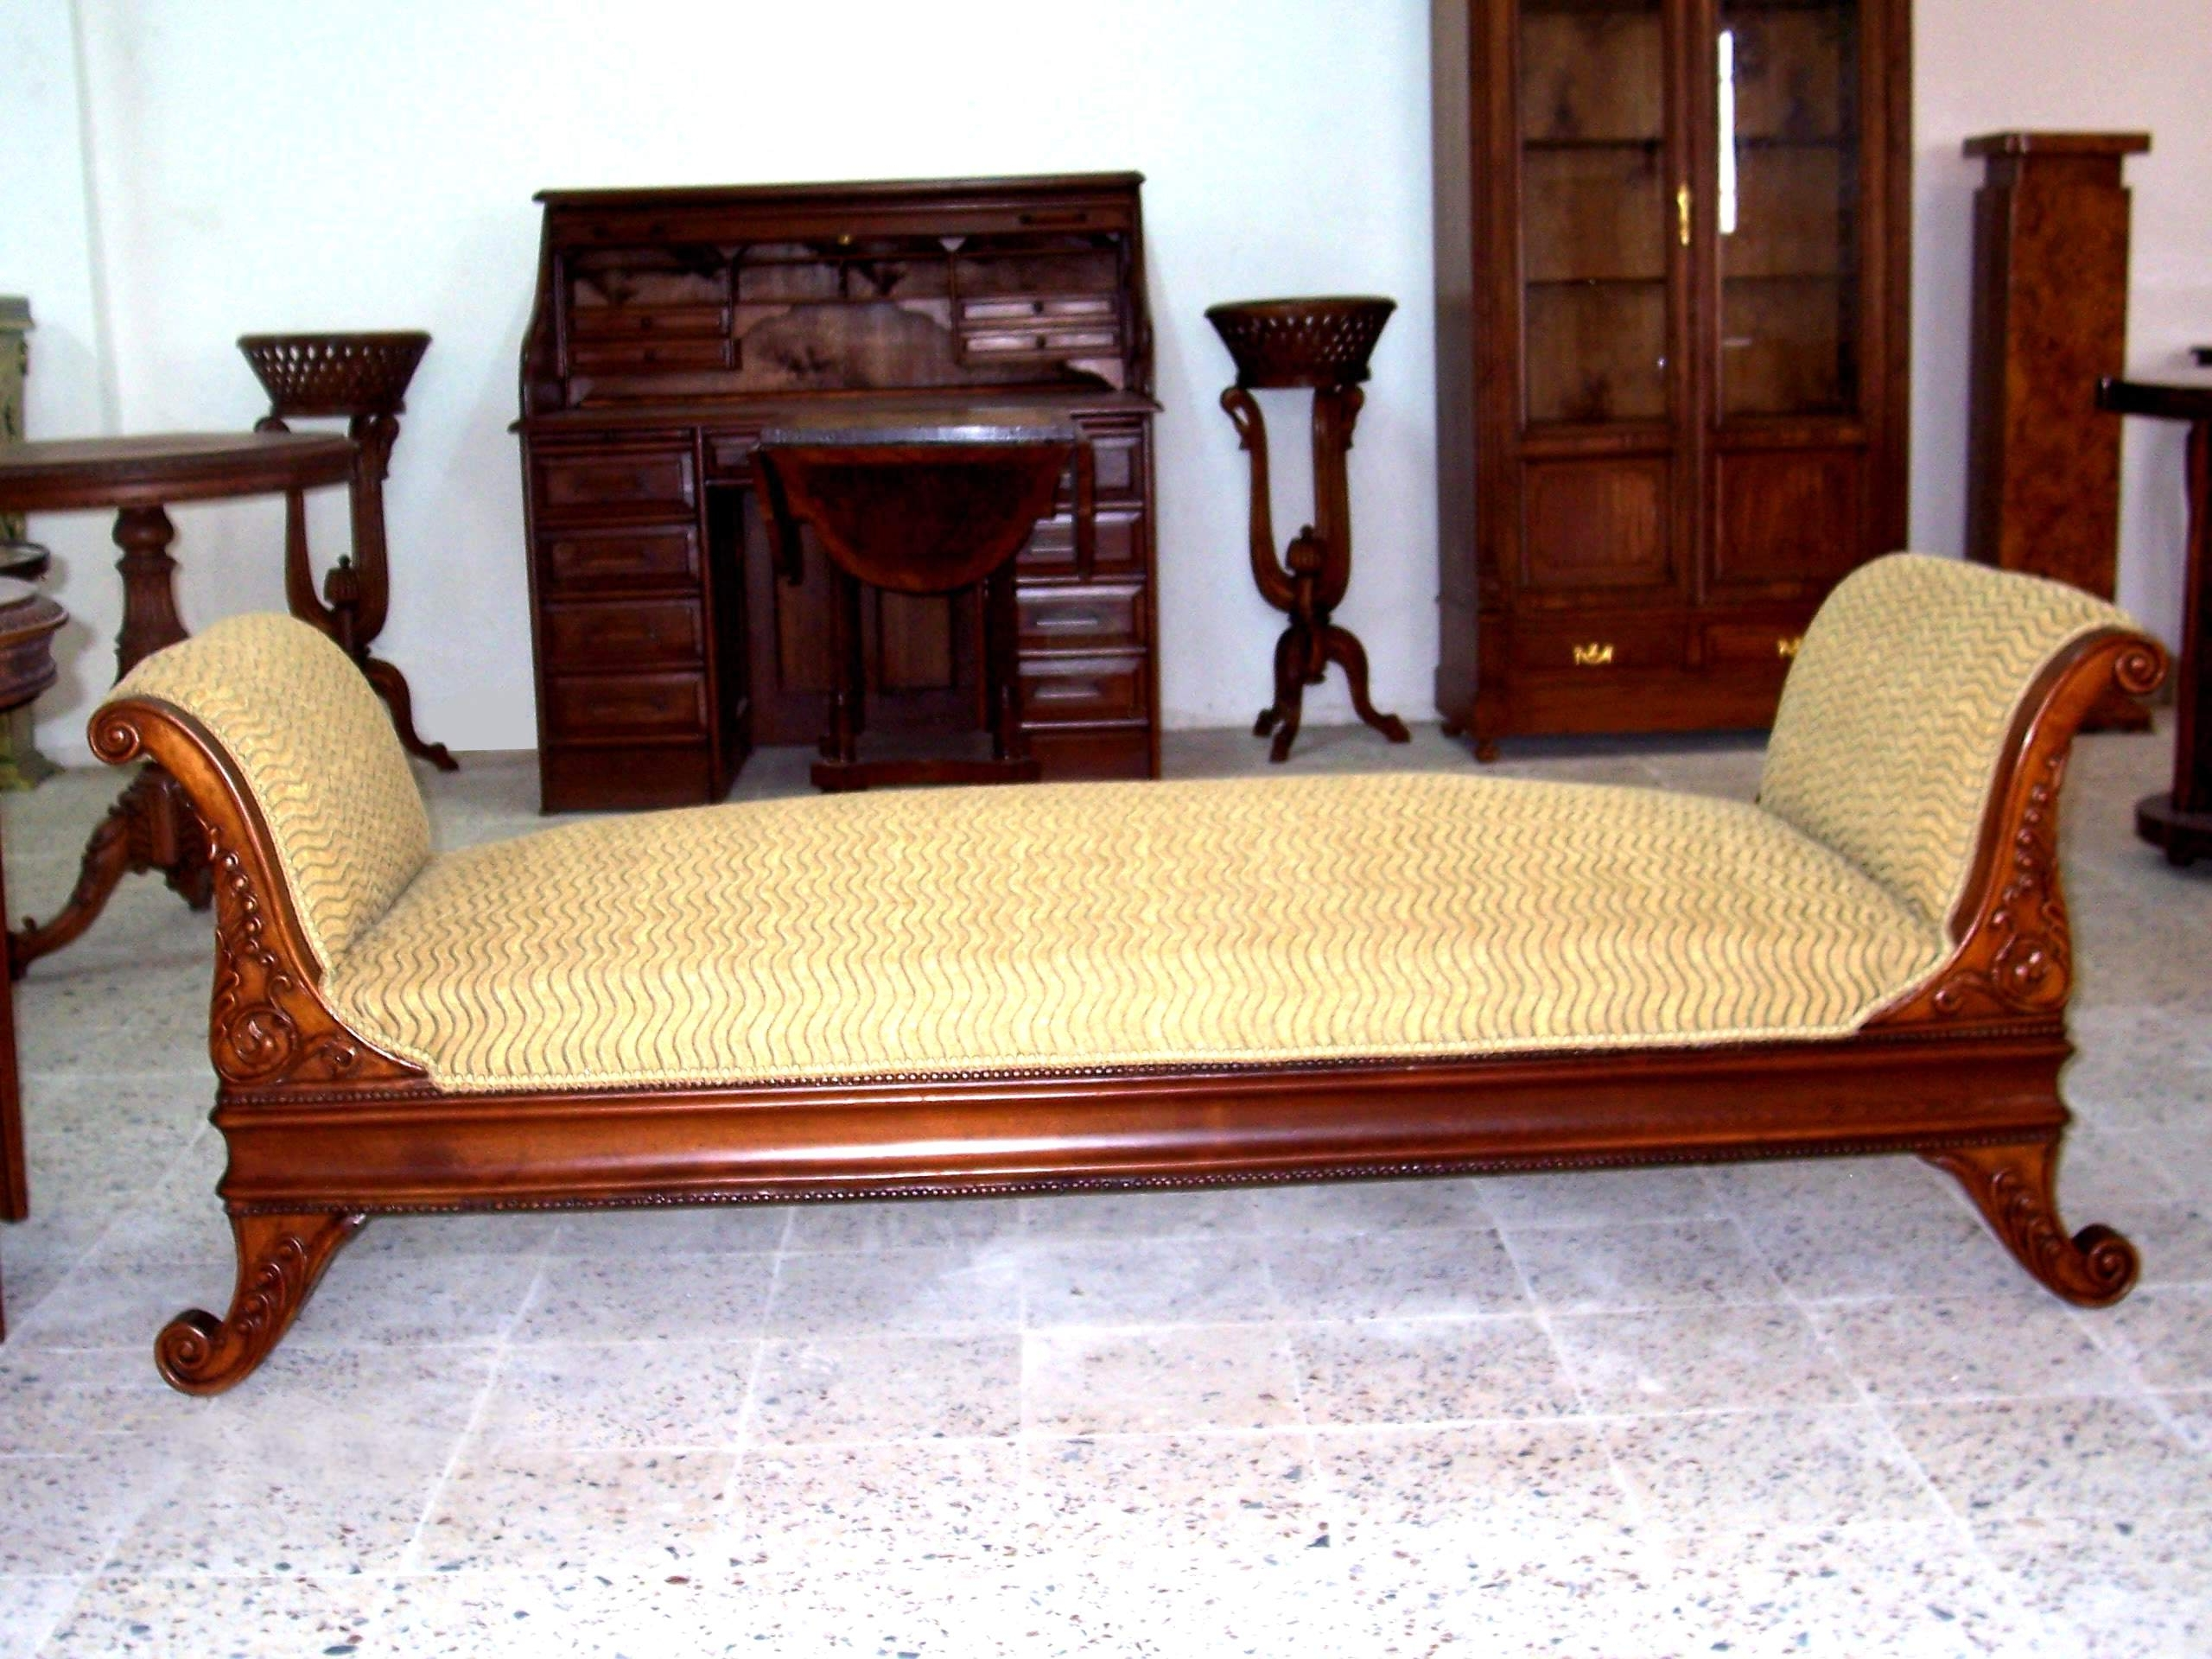 Simple Victorian Chaise Lounge – Home Design And Decor For Popular Victorian Chaise Lounge Chairs (View 11 of 15)